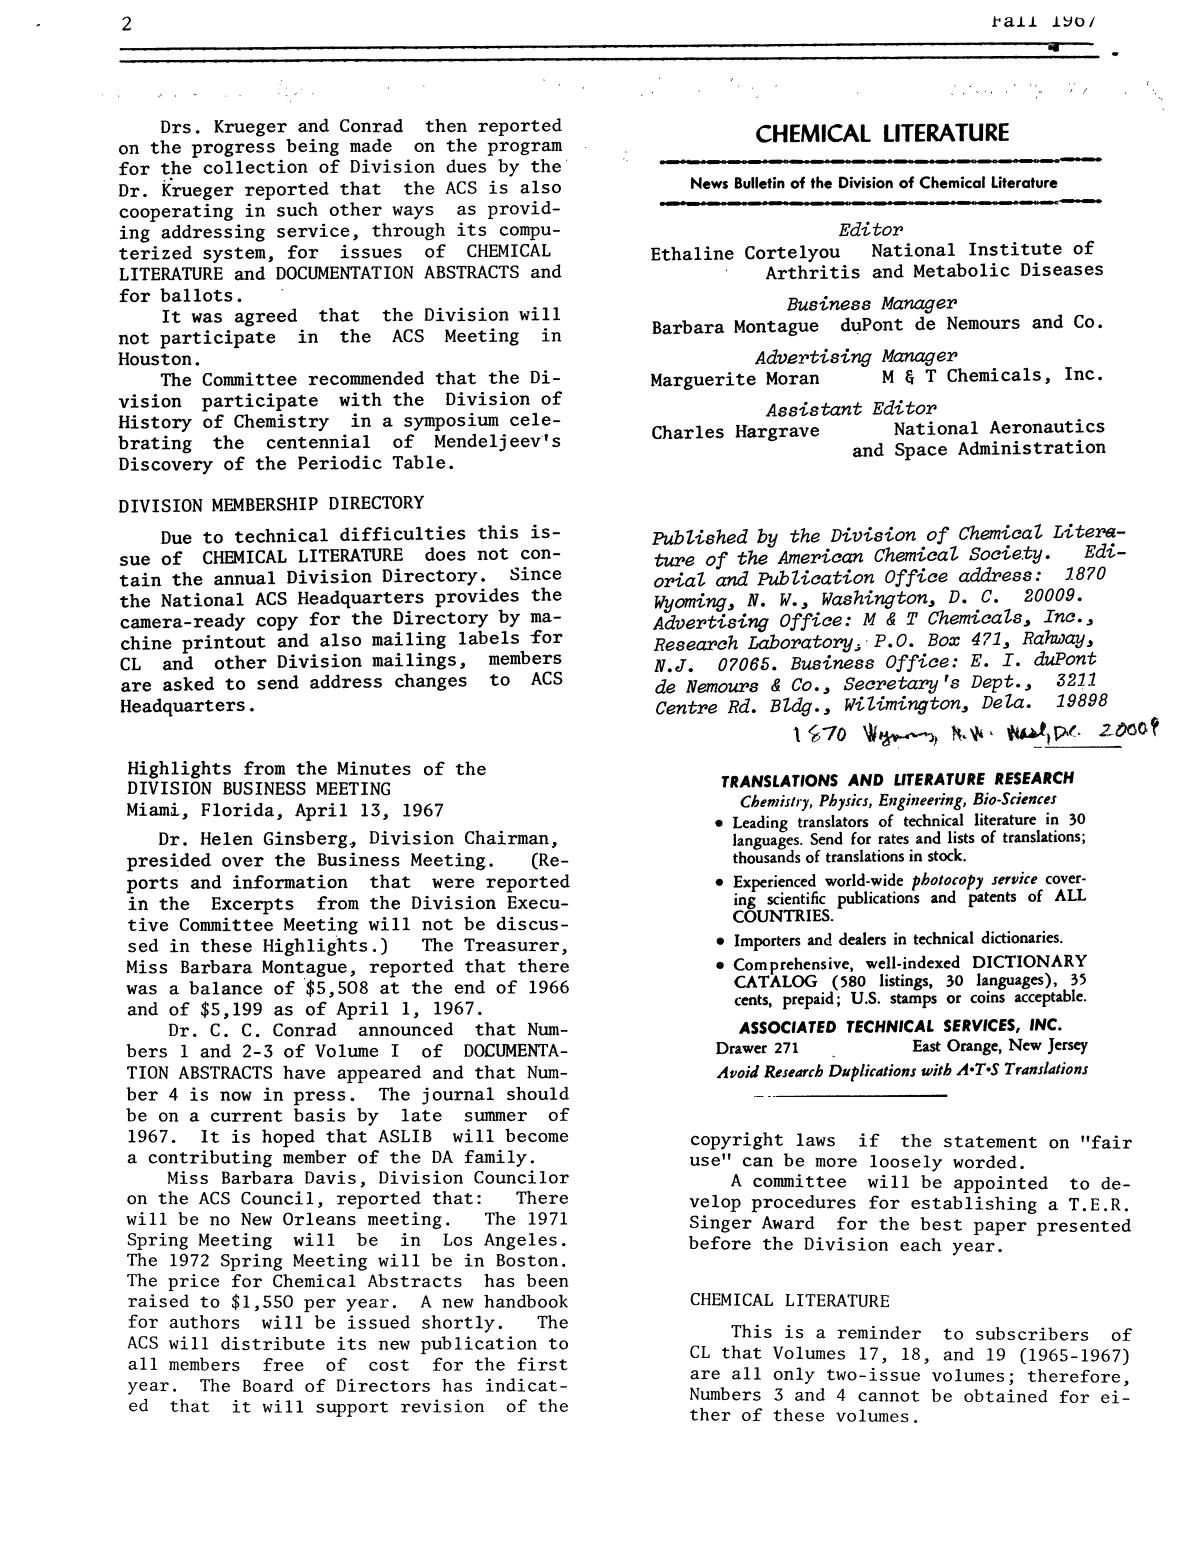 Chemical Literature, Volume 19, Number 2, Fall 1967                                                                                                      2